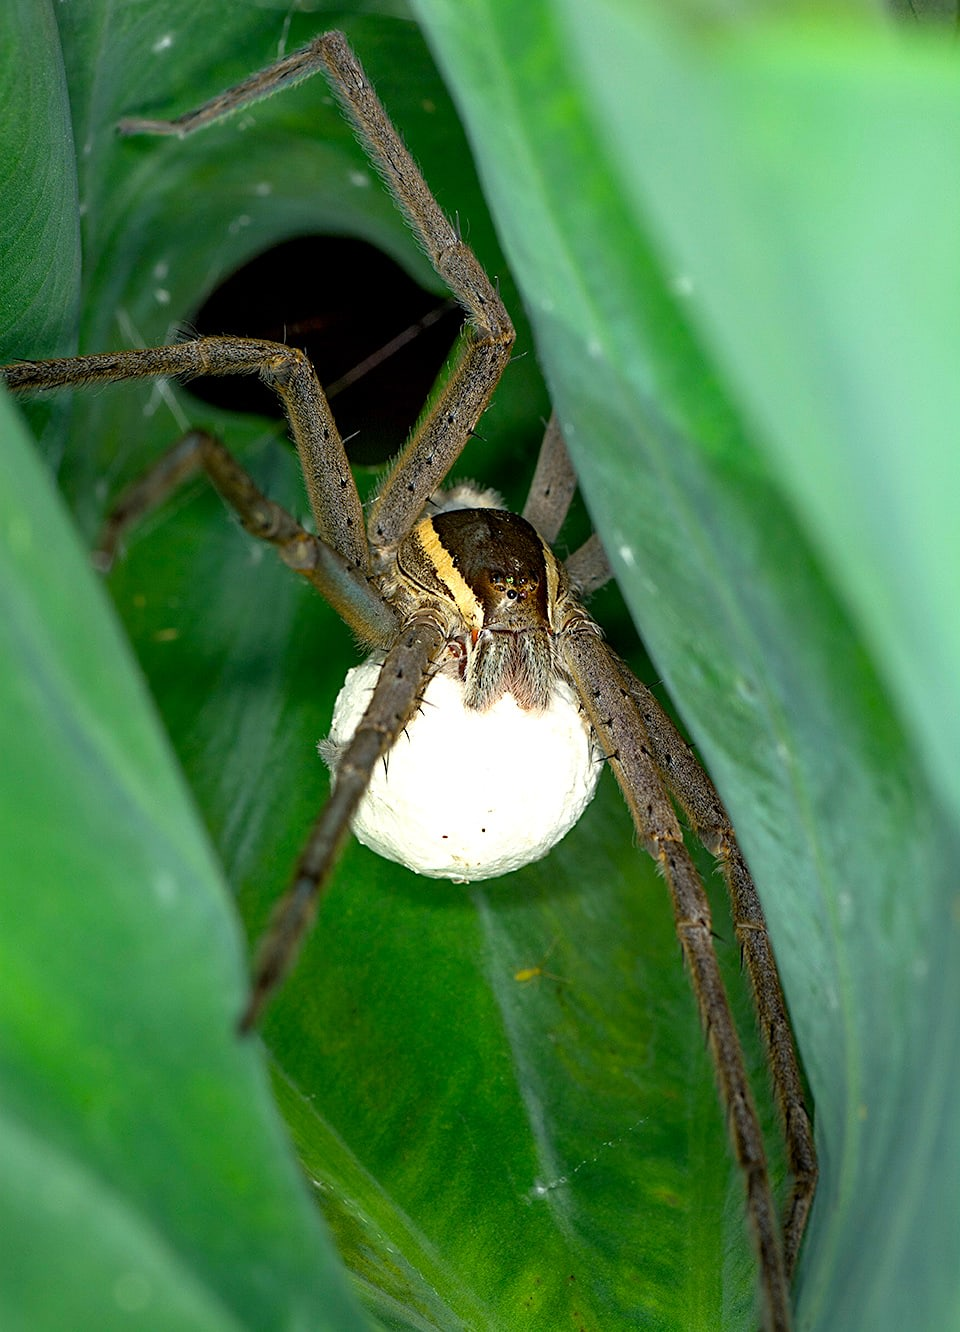 Observation in this swamp suggests that the monsoon is possibly their breeding season. The female fishing spider wraps herself between leaves and carries her egg sacs. All female spiders of the nursery web family usually carry their egg sacs under their body with their chelicerae (pair of pincer-like appendages in front of their mouths). This is a key difference between these spiders and the similar looking wolf spiders. Female wolf spiders carry their egg sacs behind them using their silk-spinning organs (spinnerets).